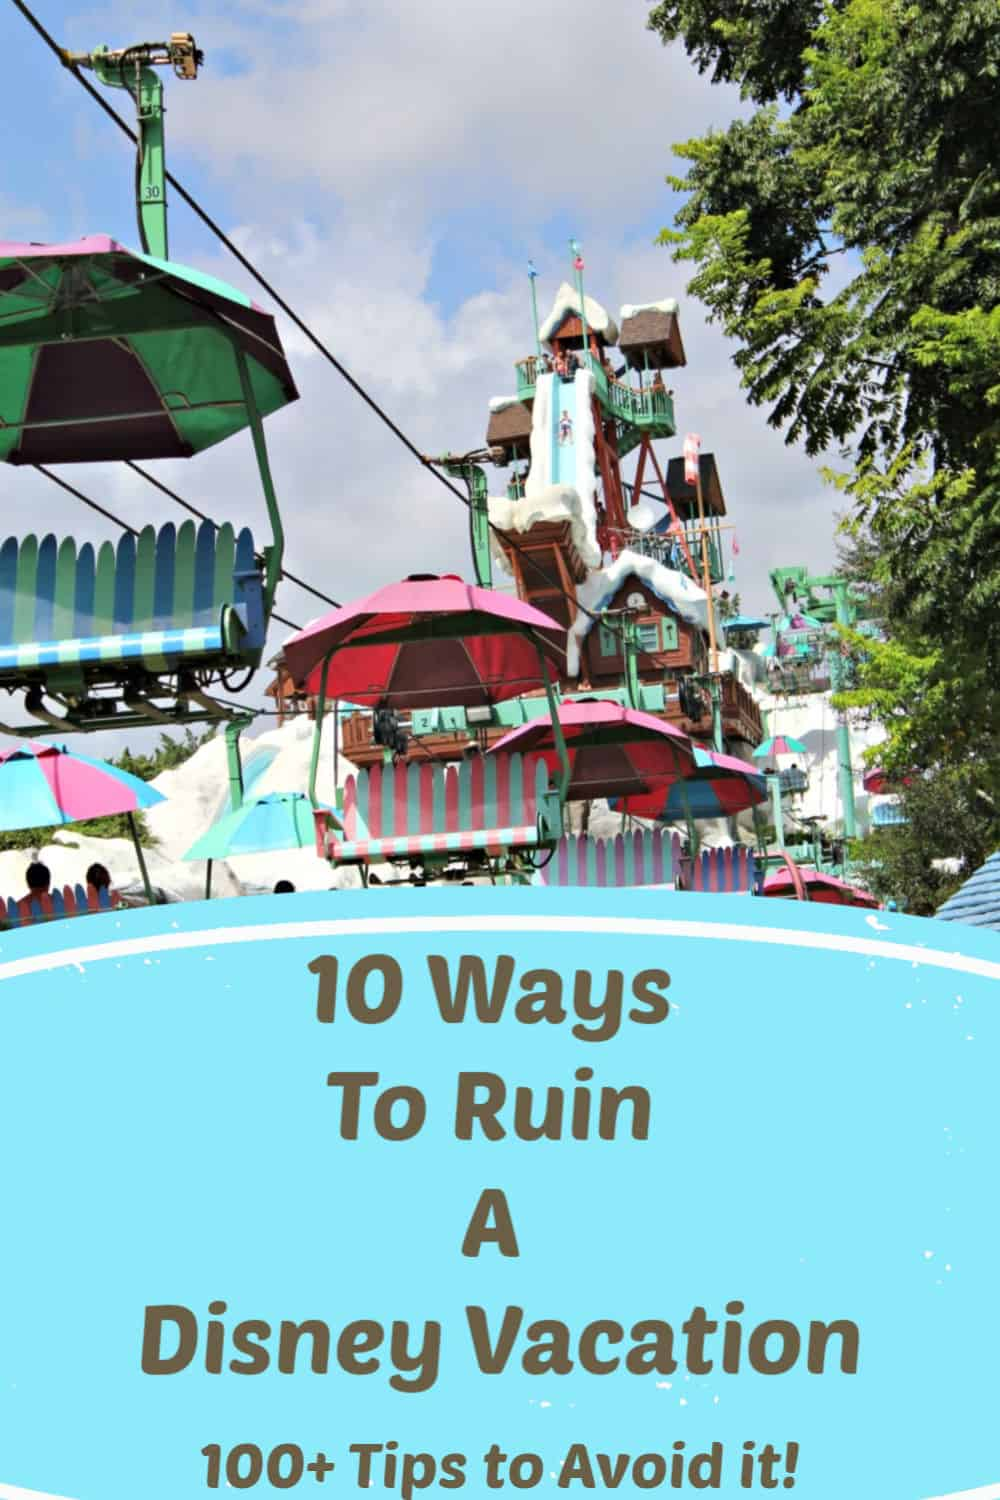 10 Ways to Ruin a Disney Vacation - 100+ Tips to avoid ruining your Disney Vacation